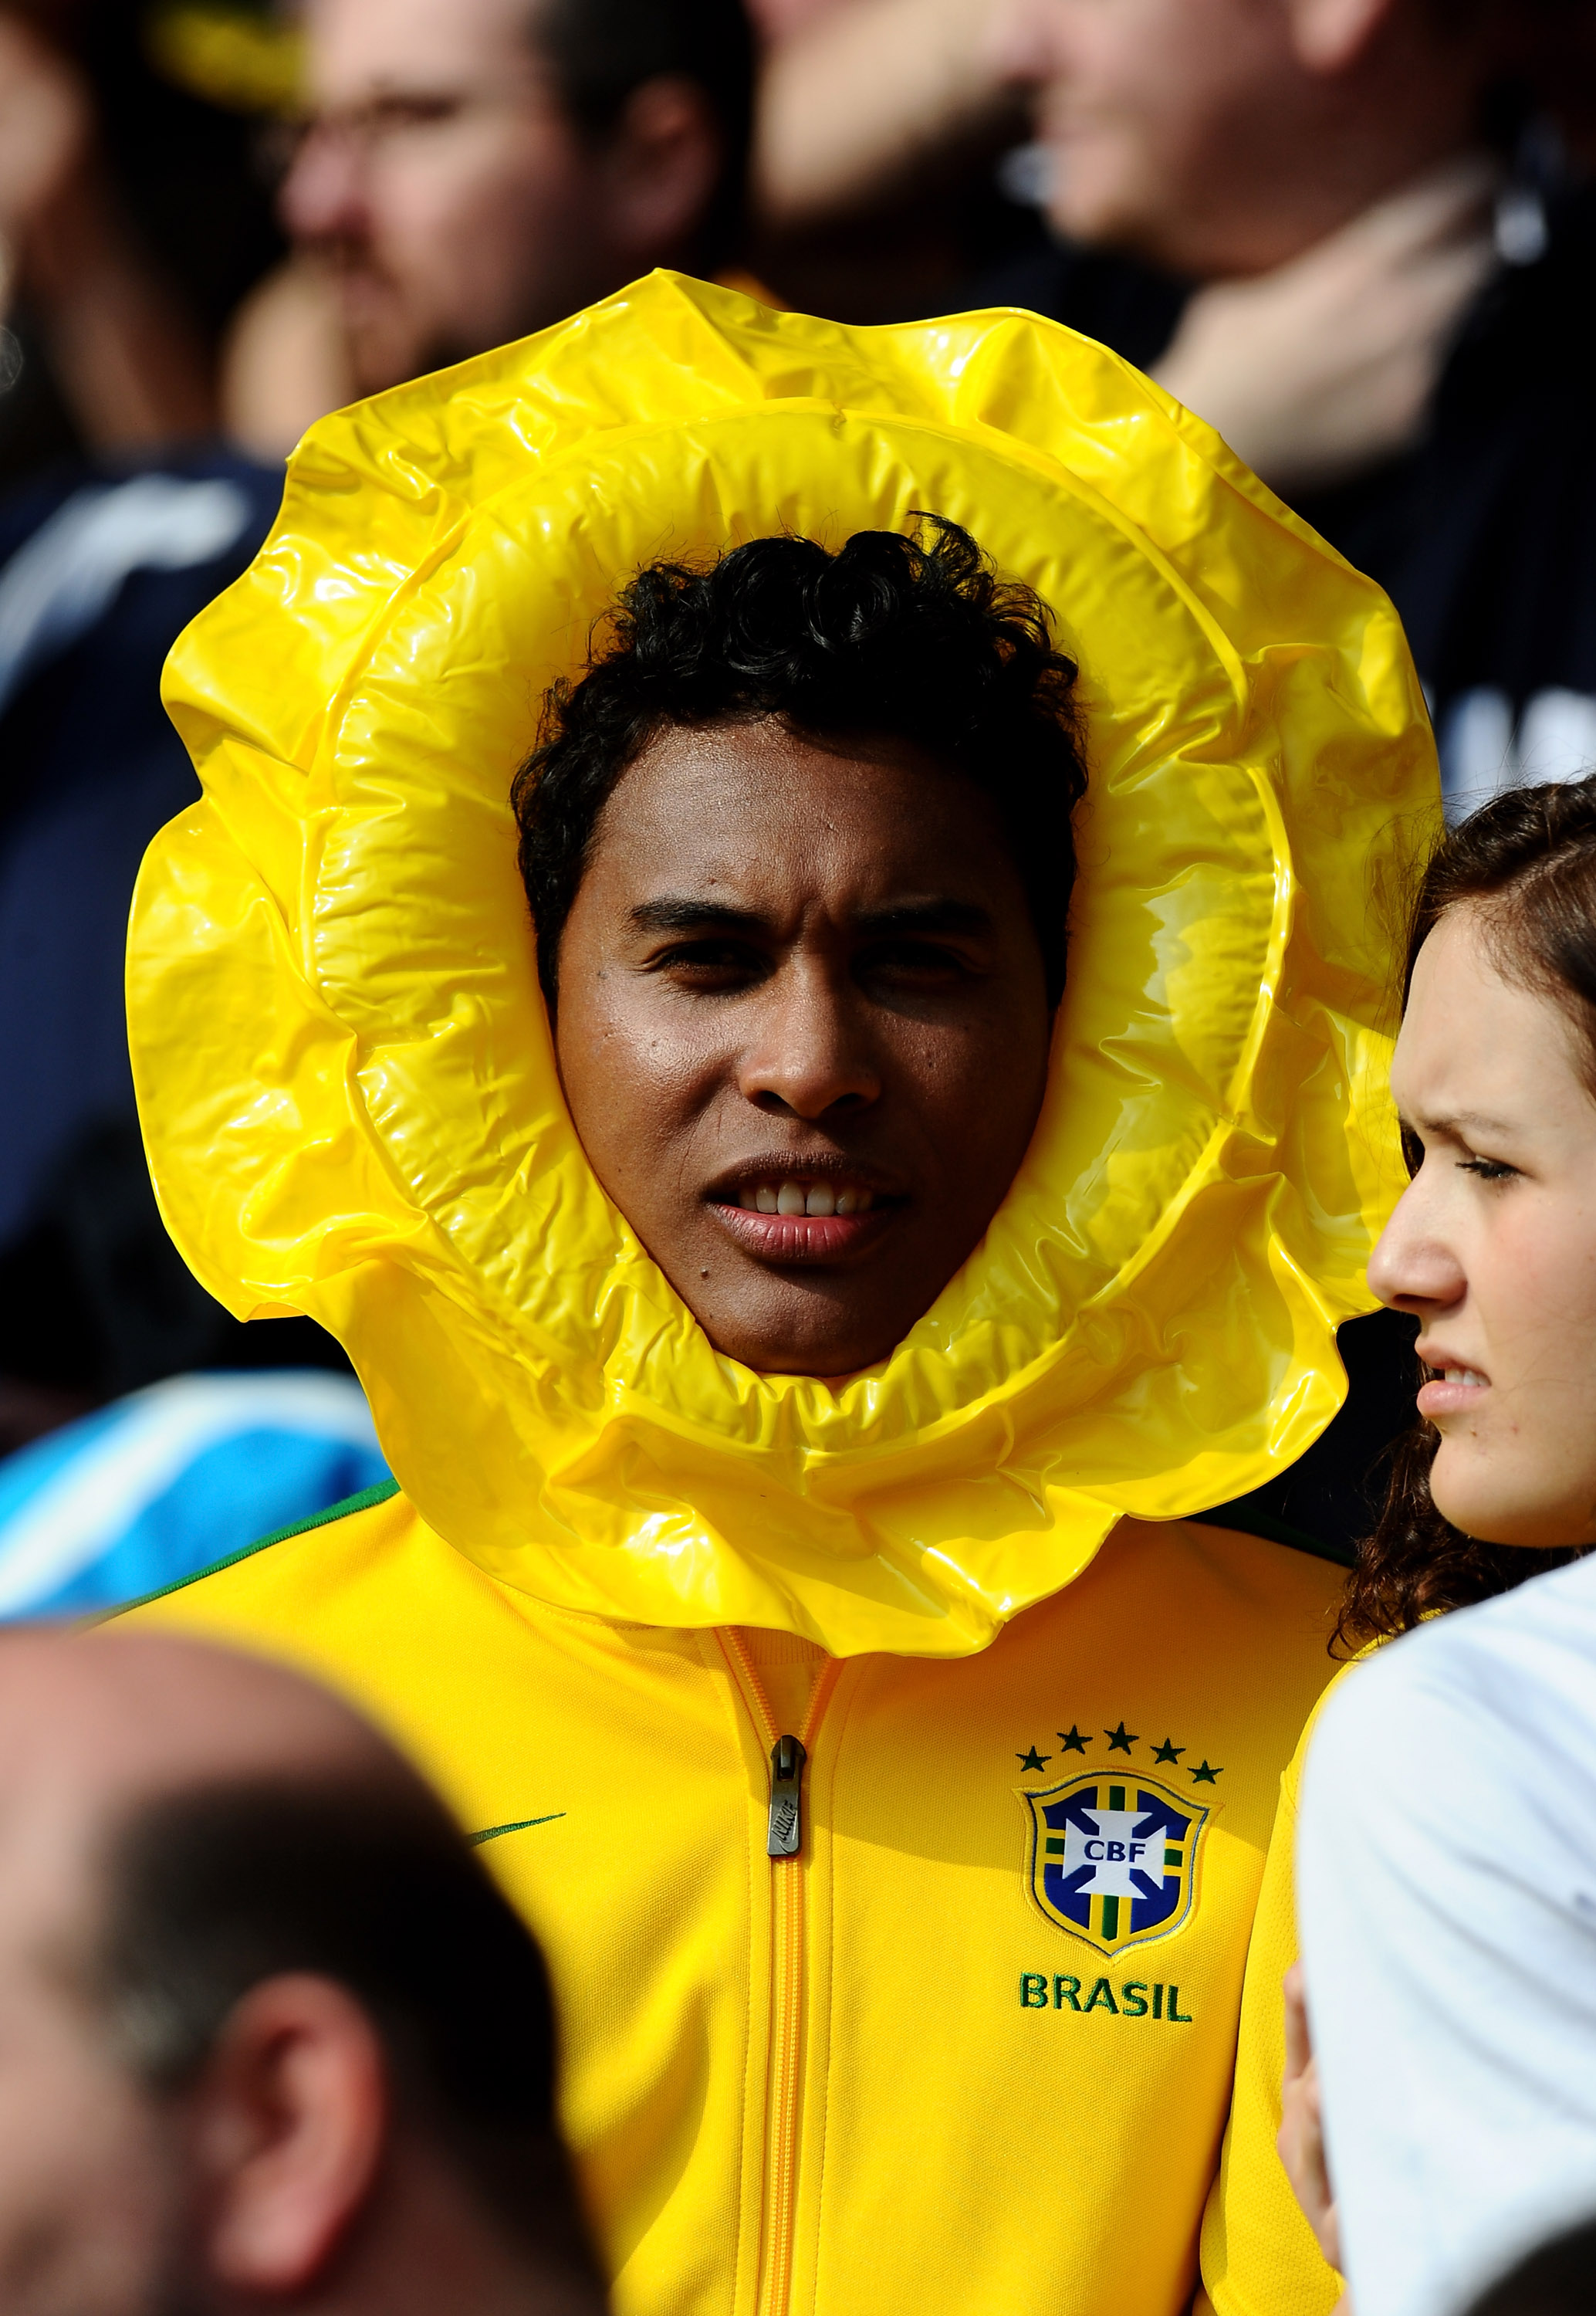 LONDON, ENGLAND - MARCH 27: A Brazil fan soaks up the atmosphere during the International friendly match between Brazil and Scotland at Emirates Stadium on March 27, 2011 in London, England.  (Photo by Mike Hewitt/Getty Images)